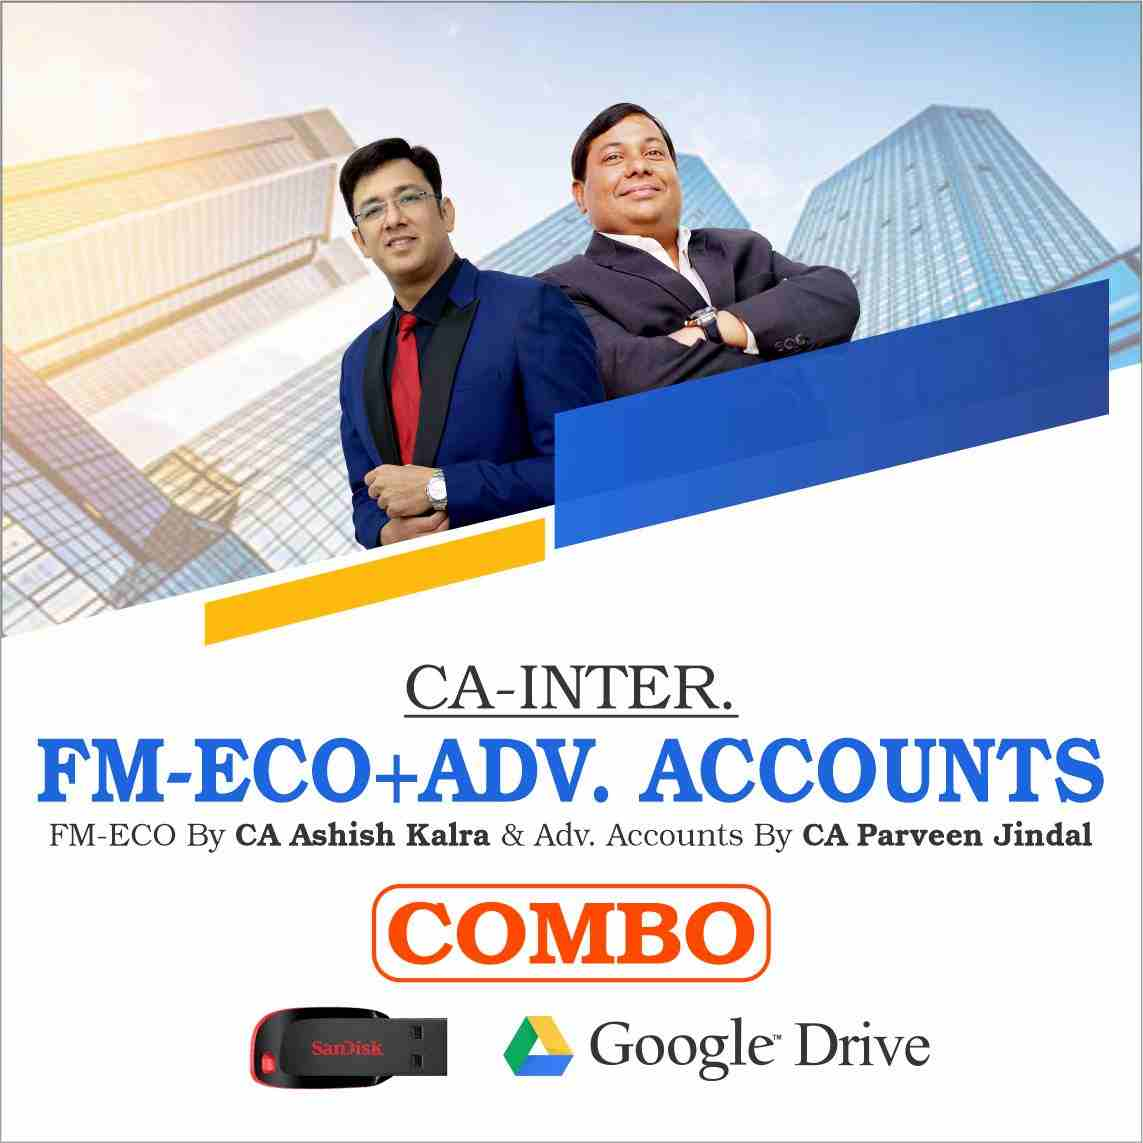 Combo (FM ECO+Adv. Accounts)